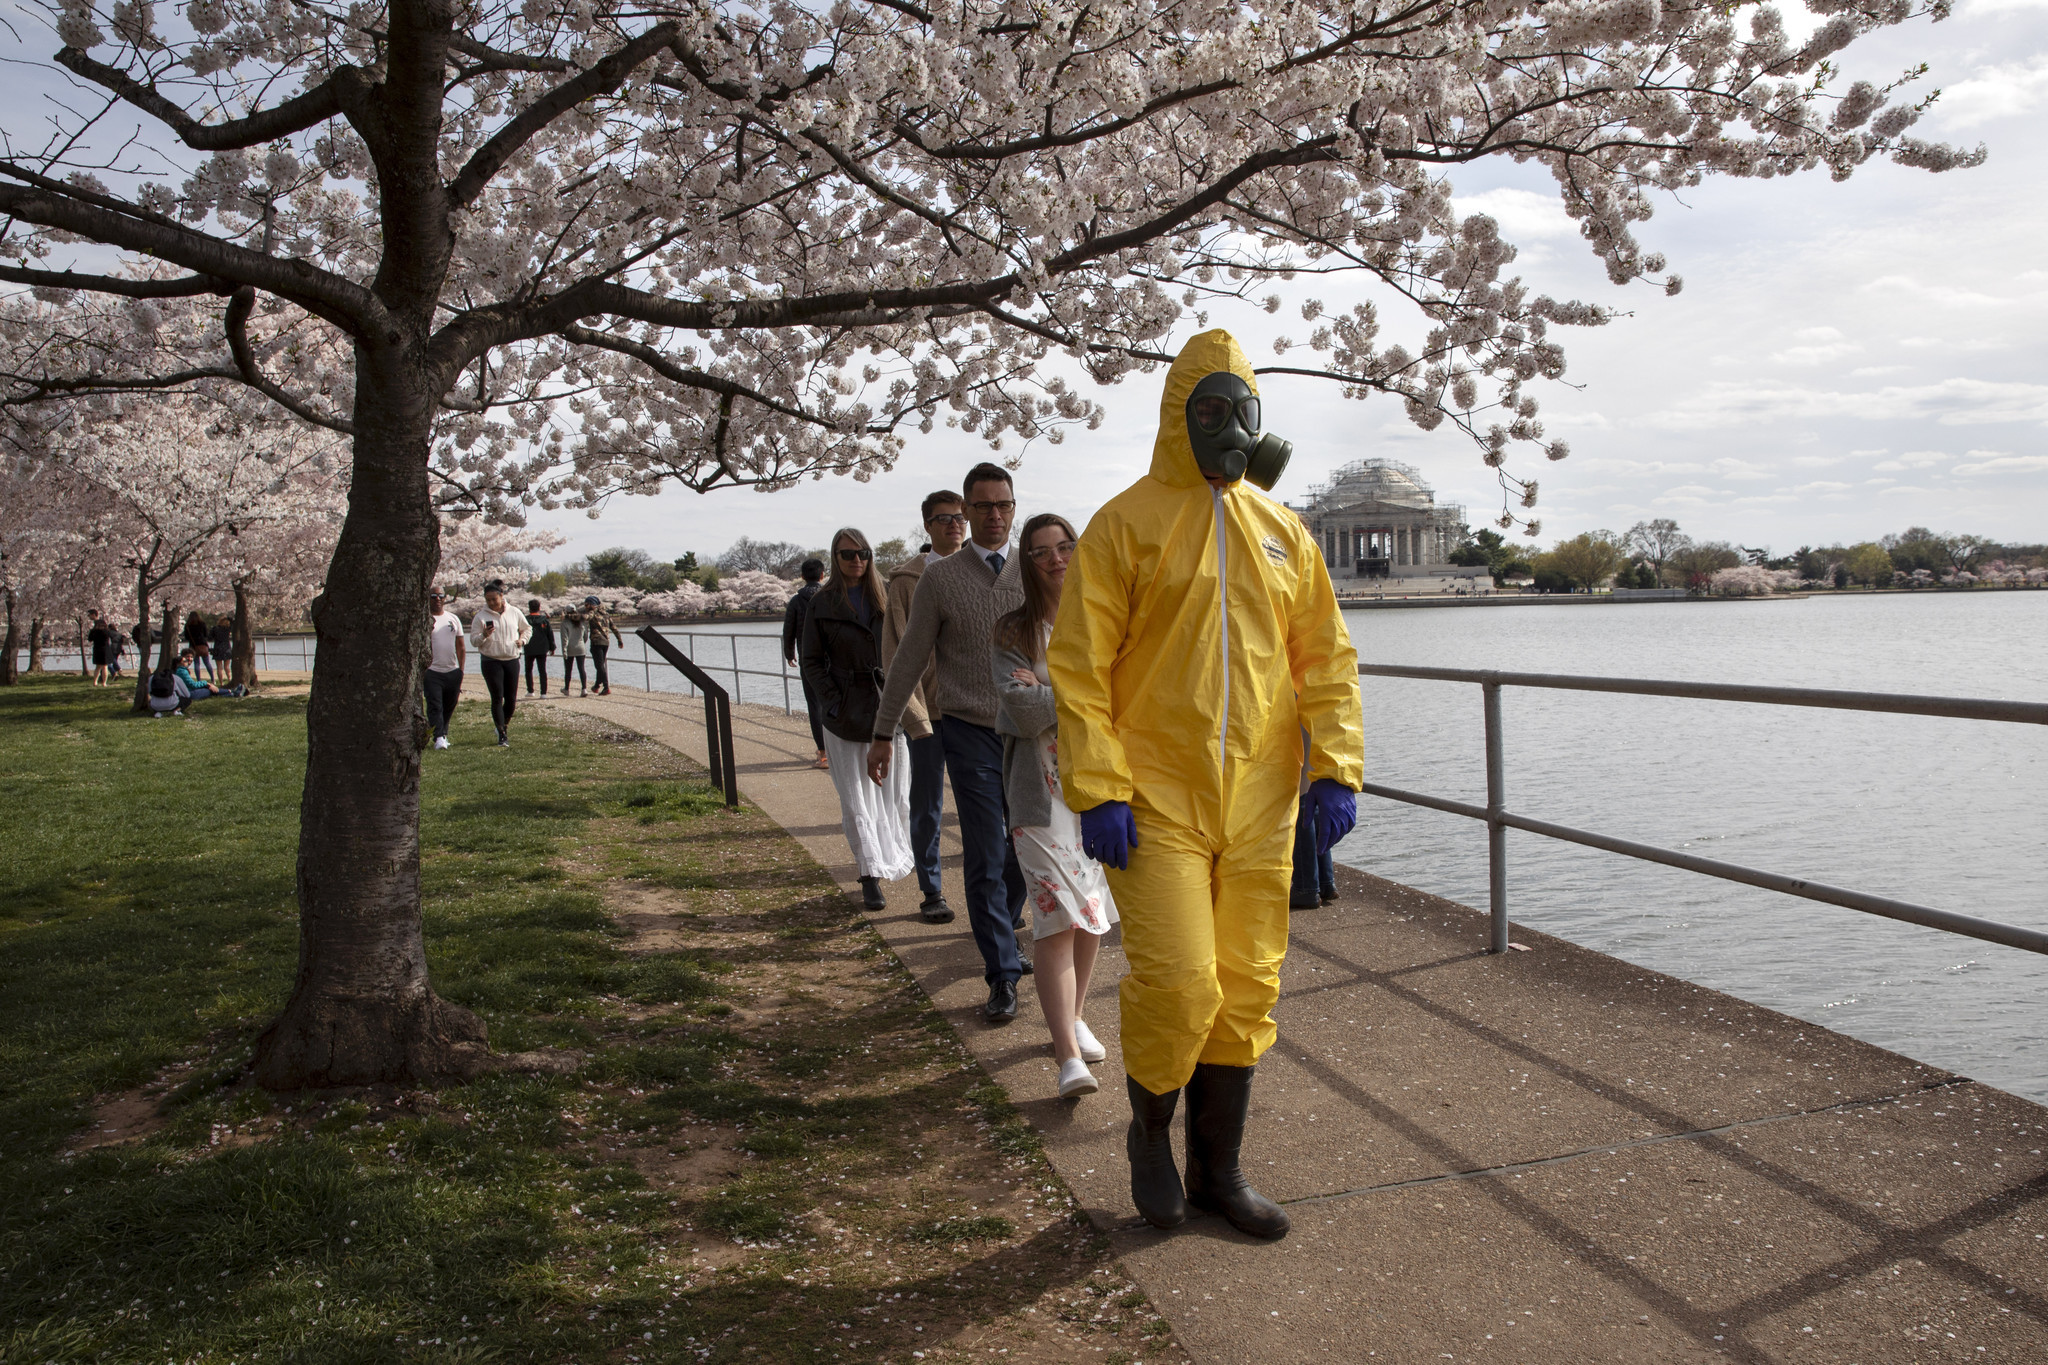 D.C. mayor brings National Guard to keep crowds from city's cherry blossom trees amid coronavirus fears